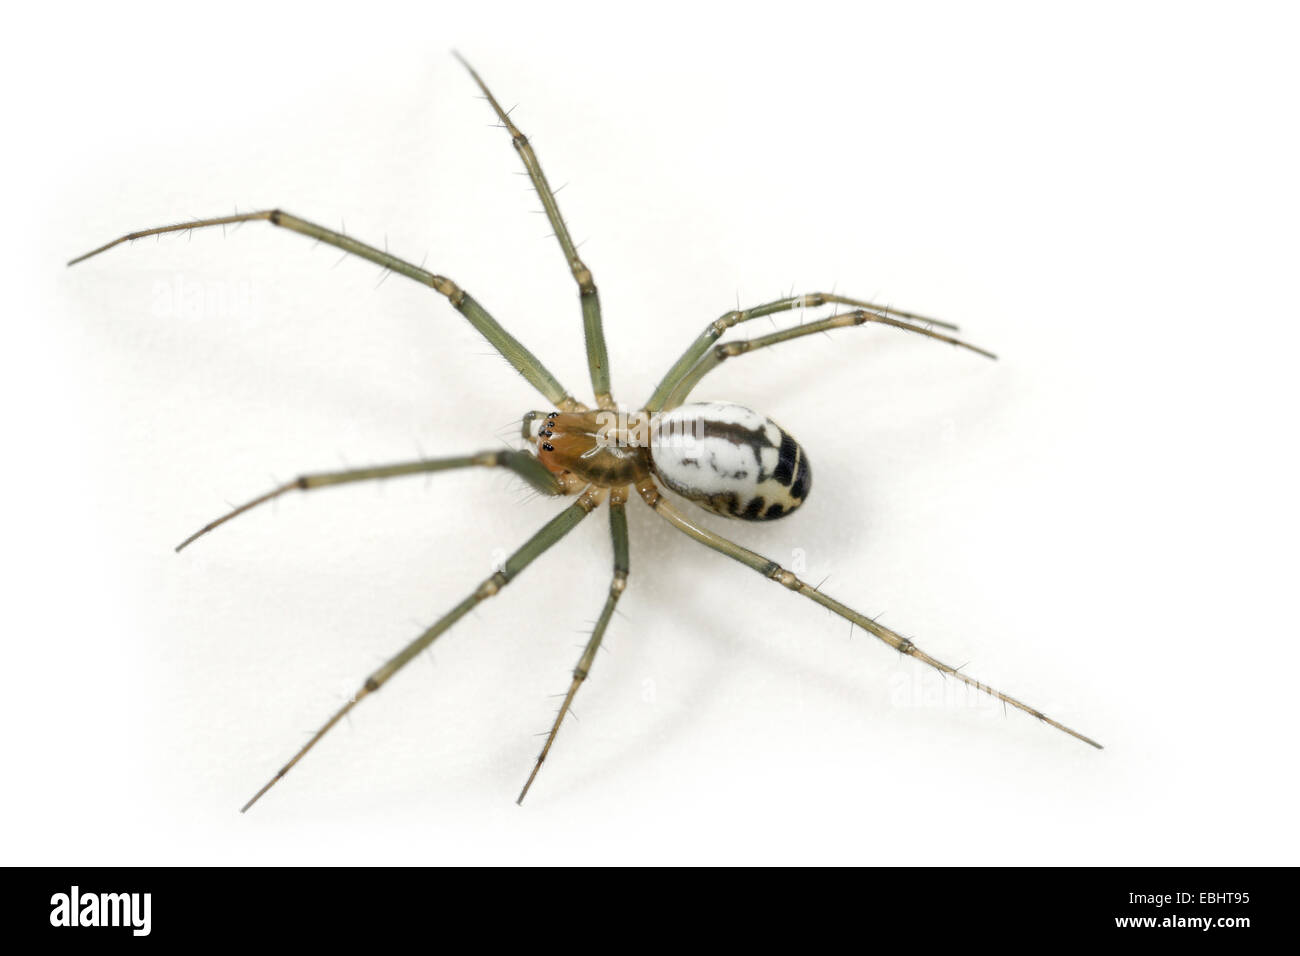 A female Black-Tailed Hammock-Spider (Neriene emphana) on a white background, part of the family Linyphiidae - Sheetweb Stock Photo